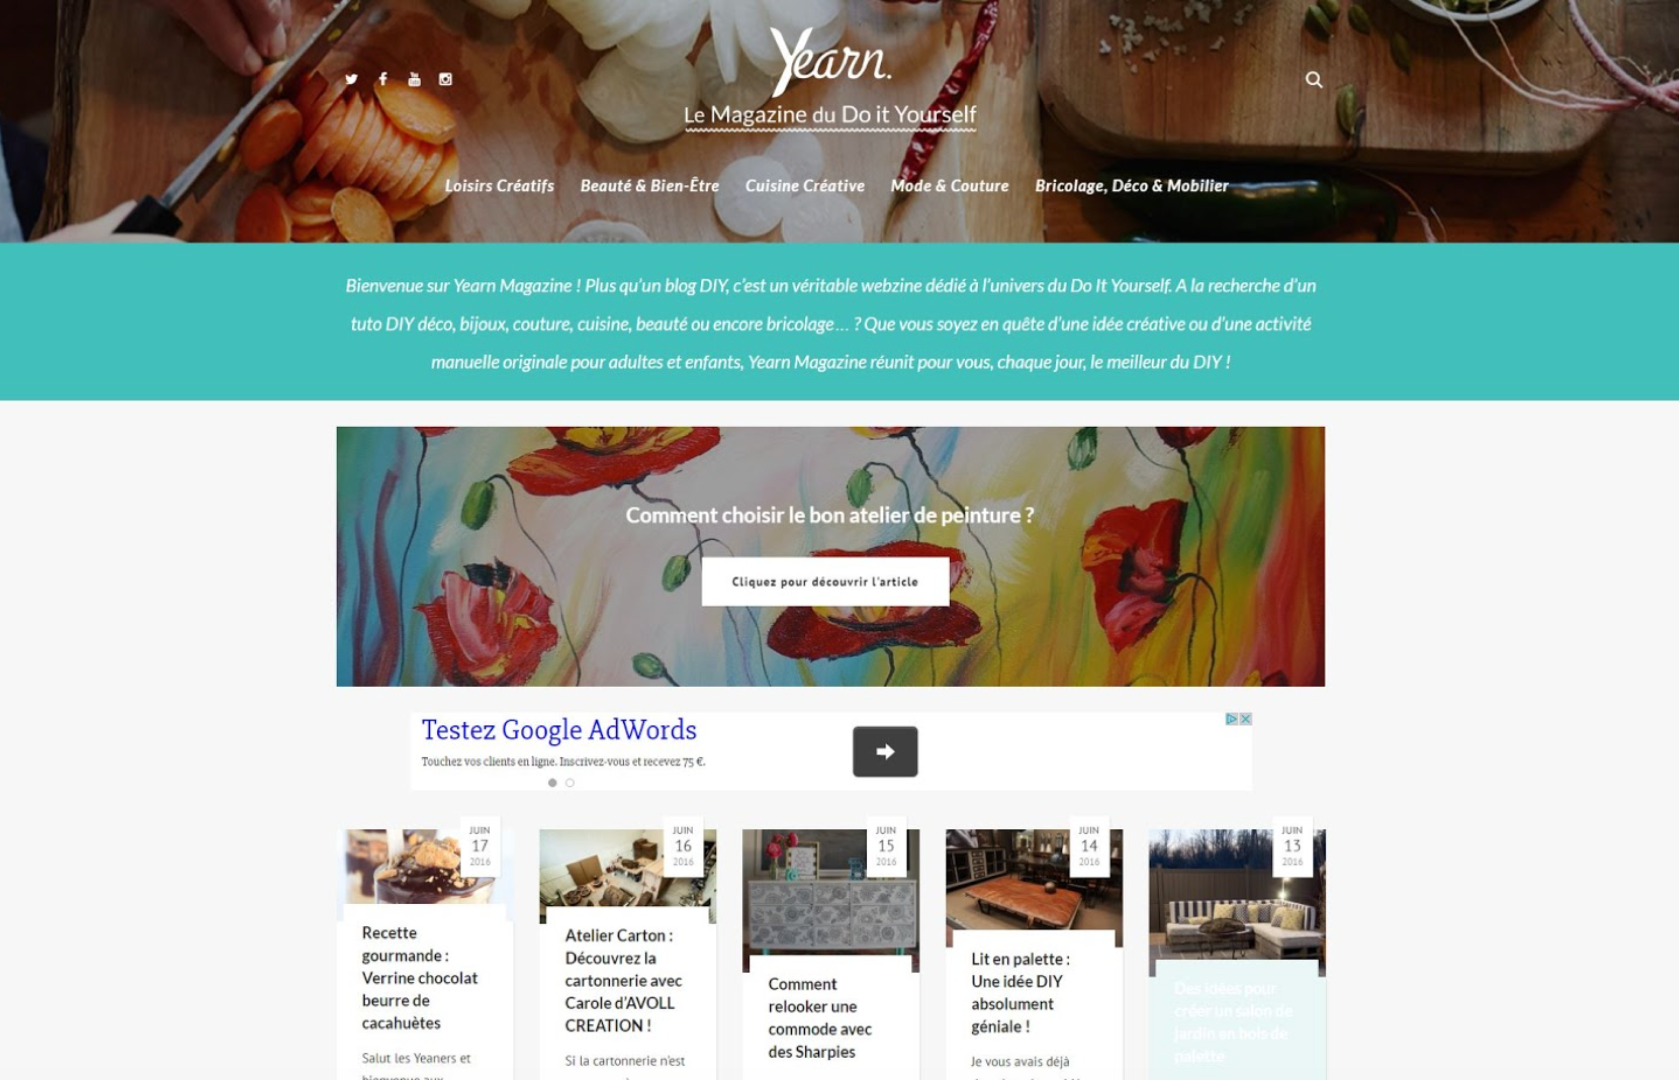 Vincent Redor first web magazine called Yearn Magazine dedicated to DIY practices